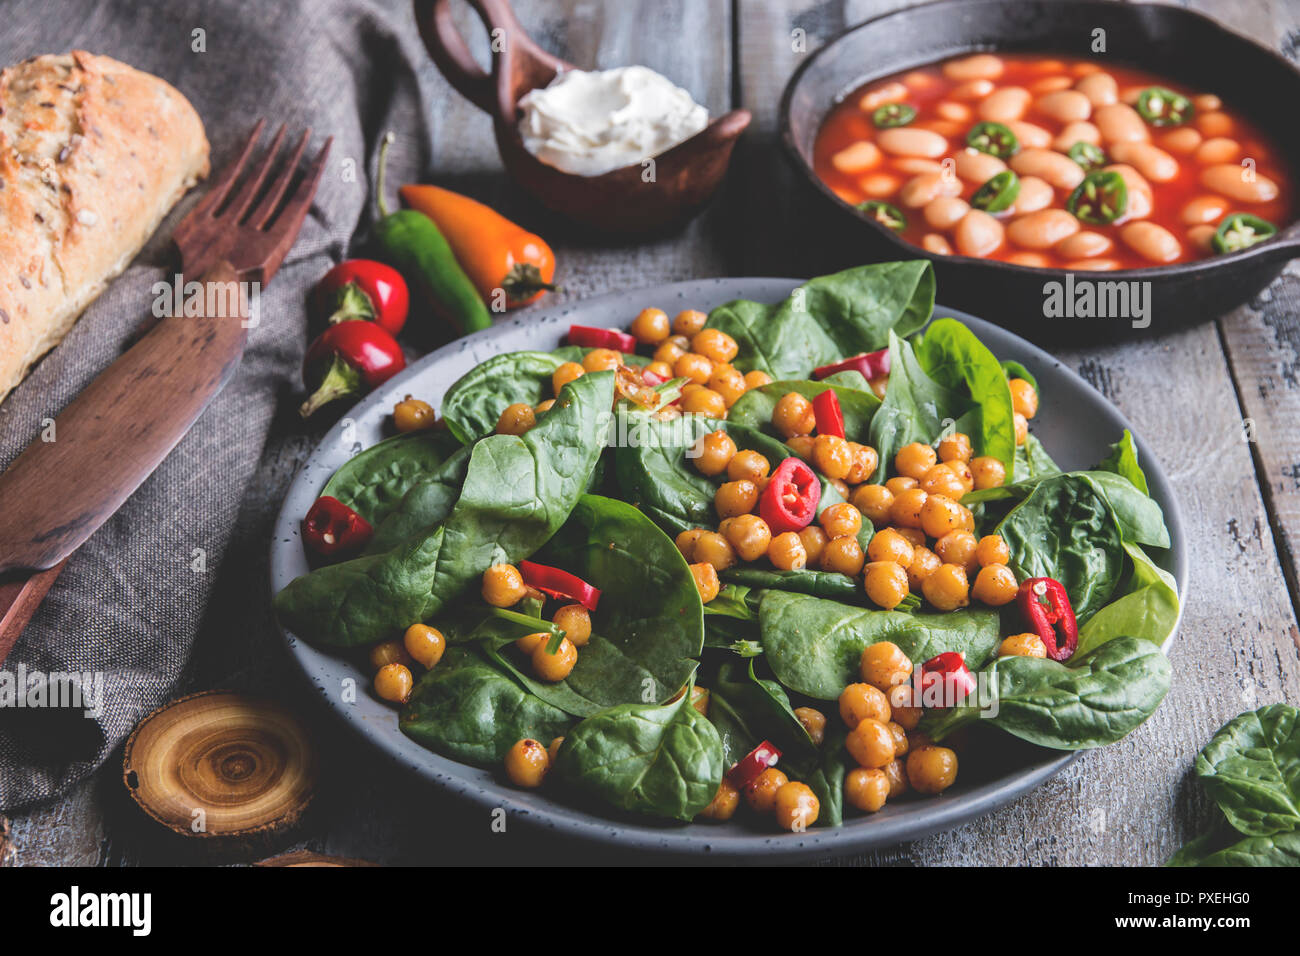 Chickpeas and veggies salad with spinach leaves, healthy homemade vegan food, diet. white beans in tomato sauce - Stock Image